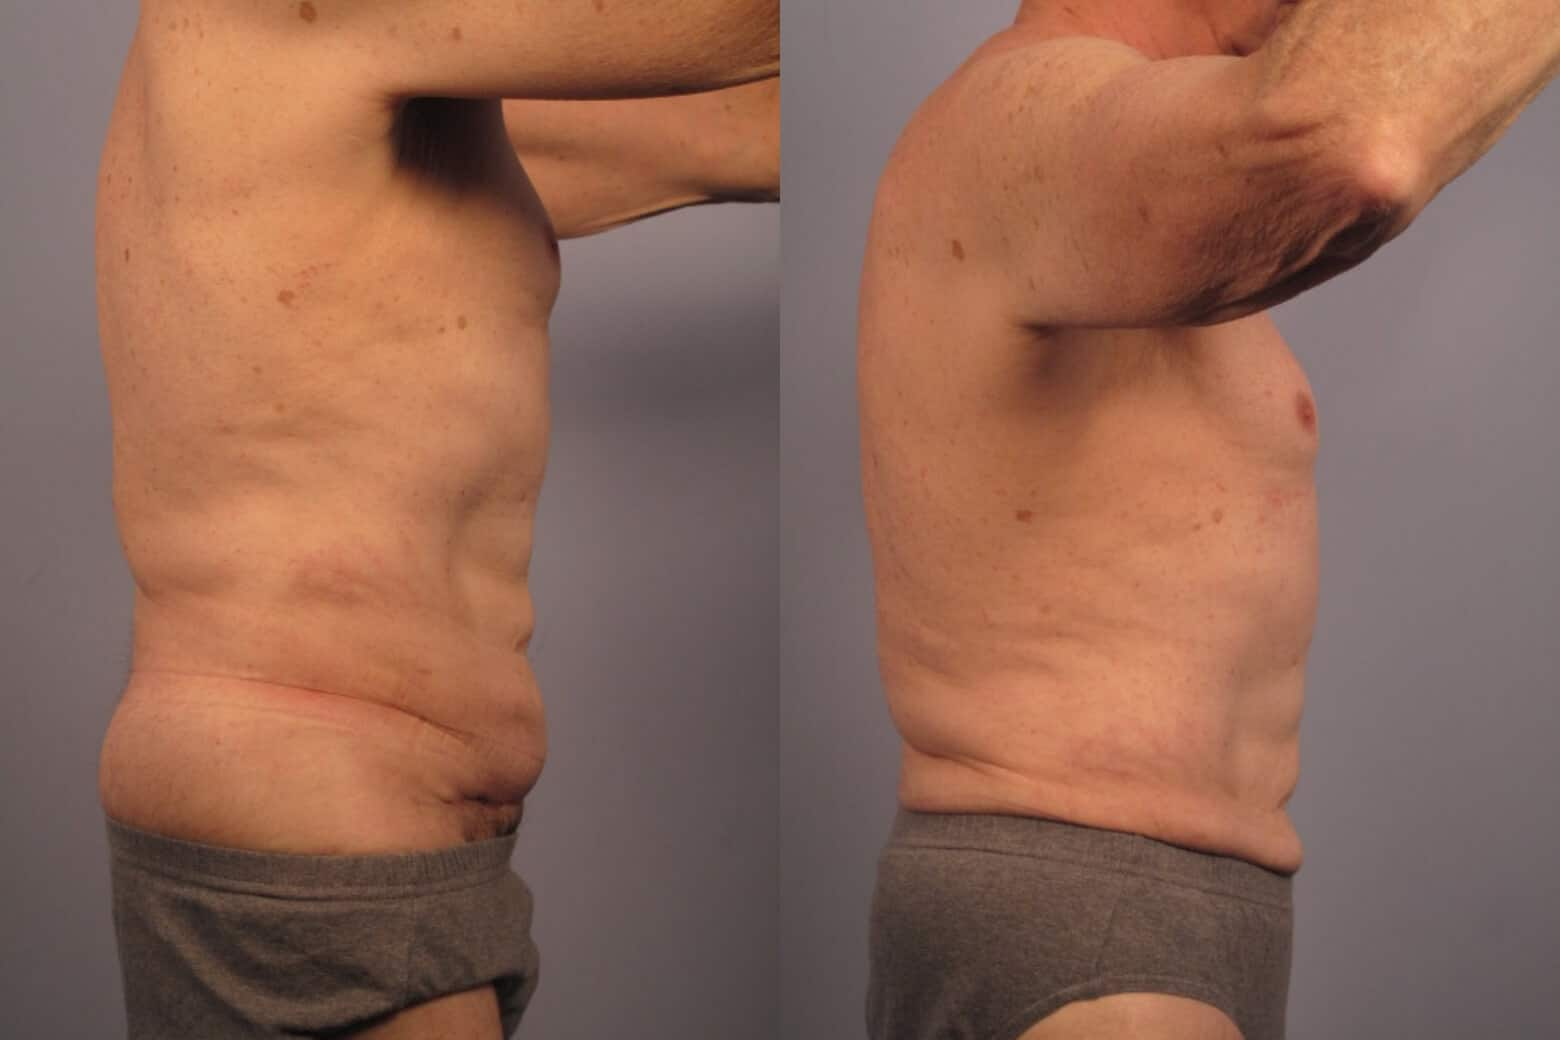 Male Tummy Tuck - Before and After Gallery - Patient Photo 19